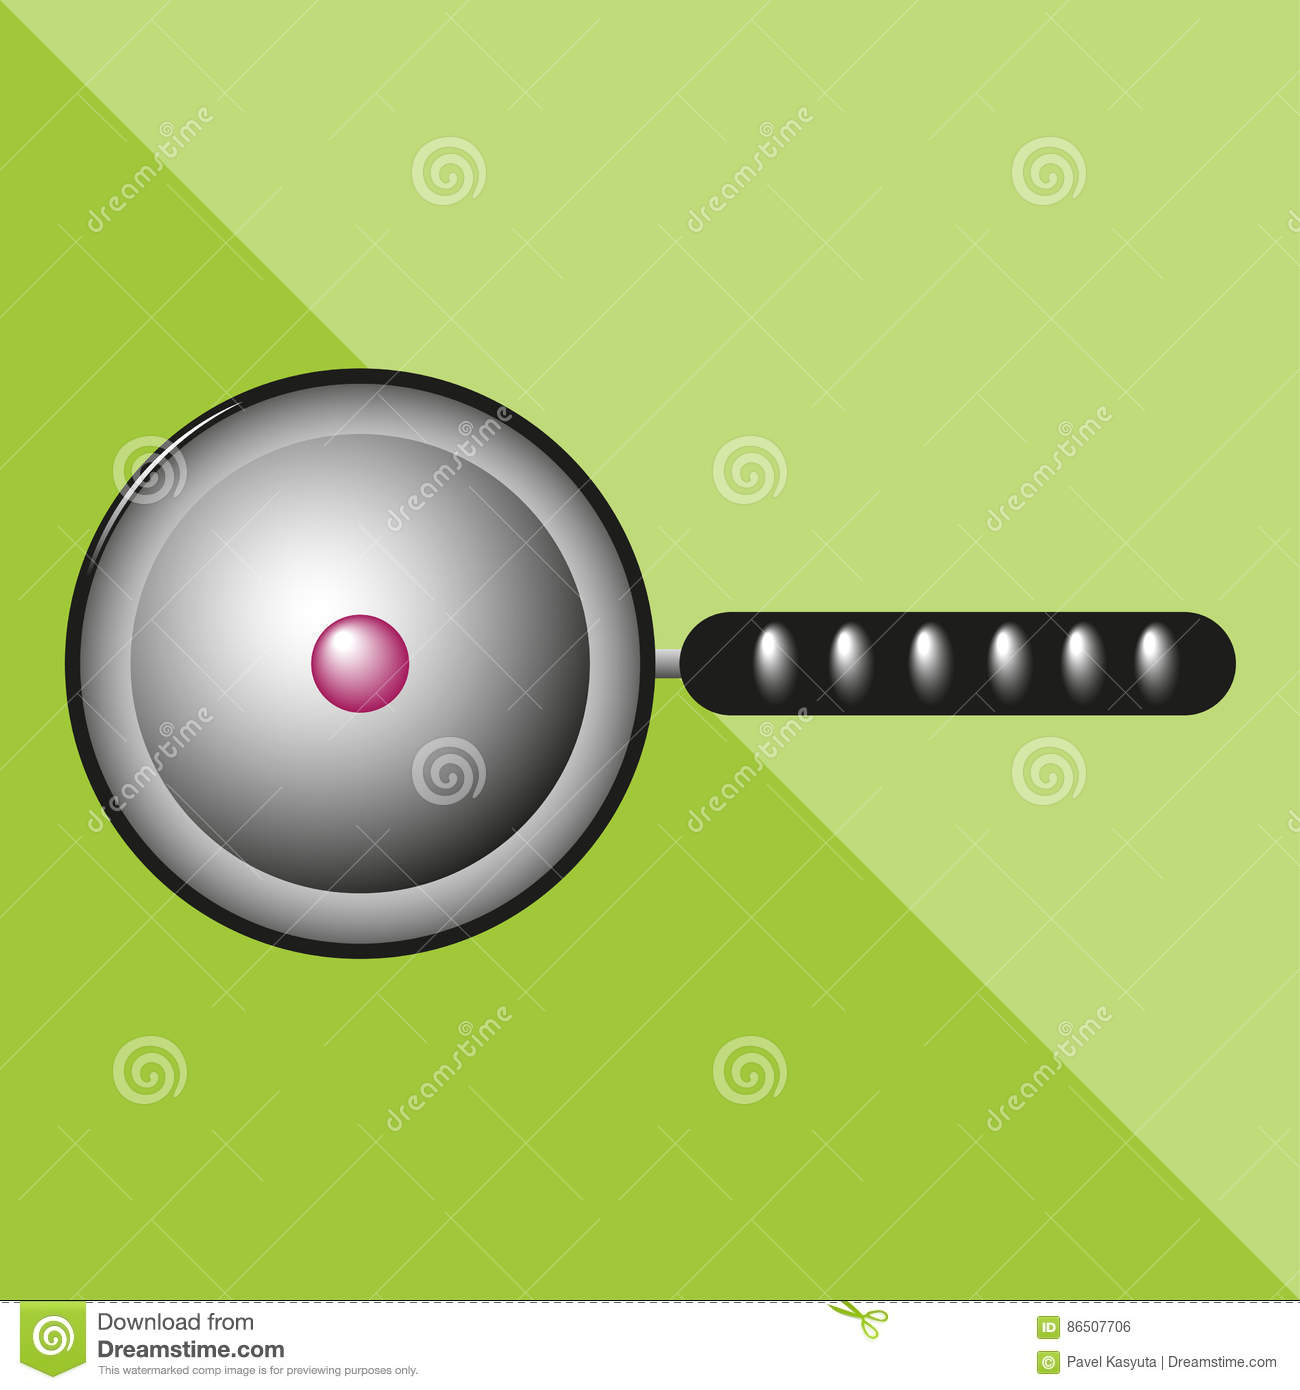 Cooking Pan Kitchen Utensils And Equipment Icon Stock